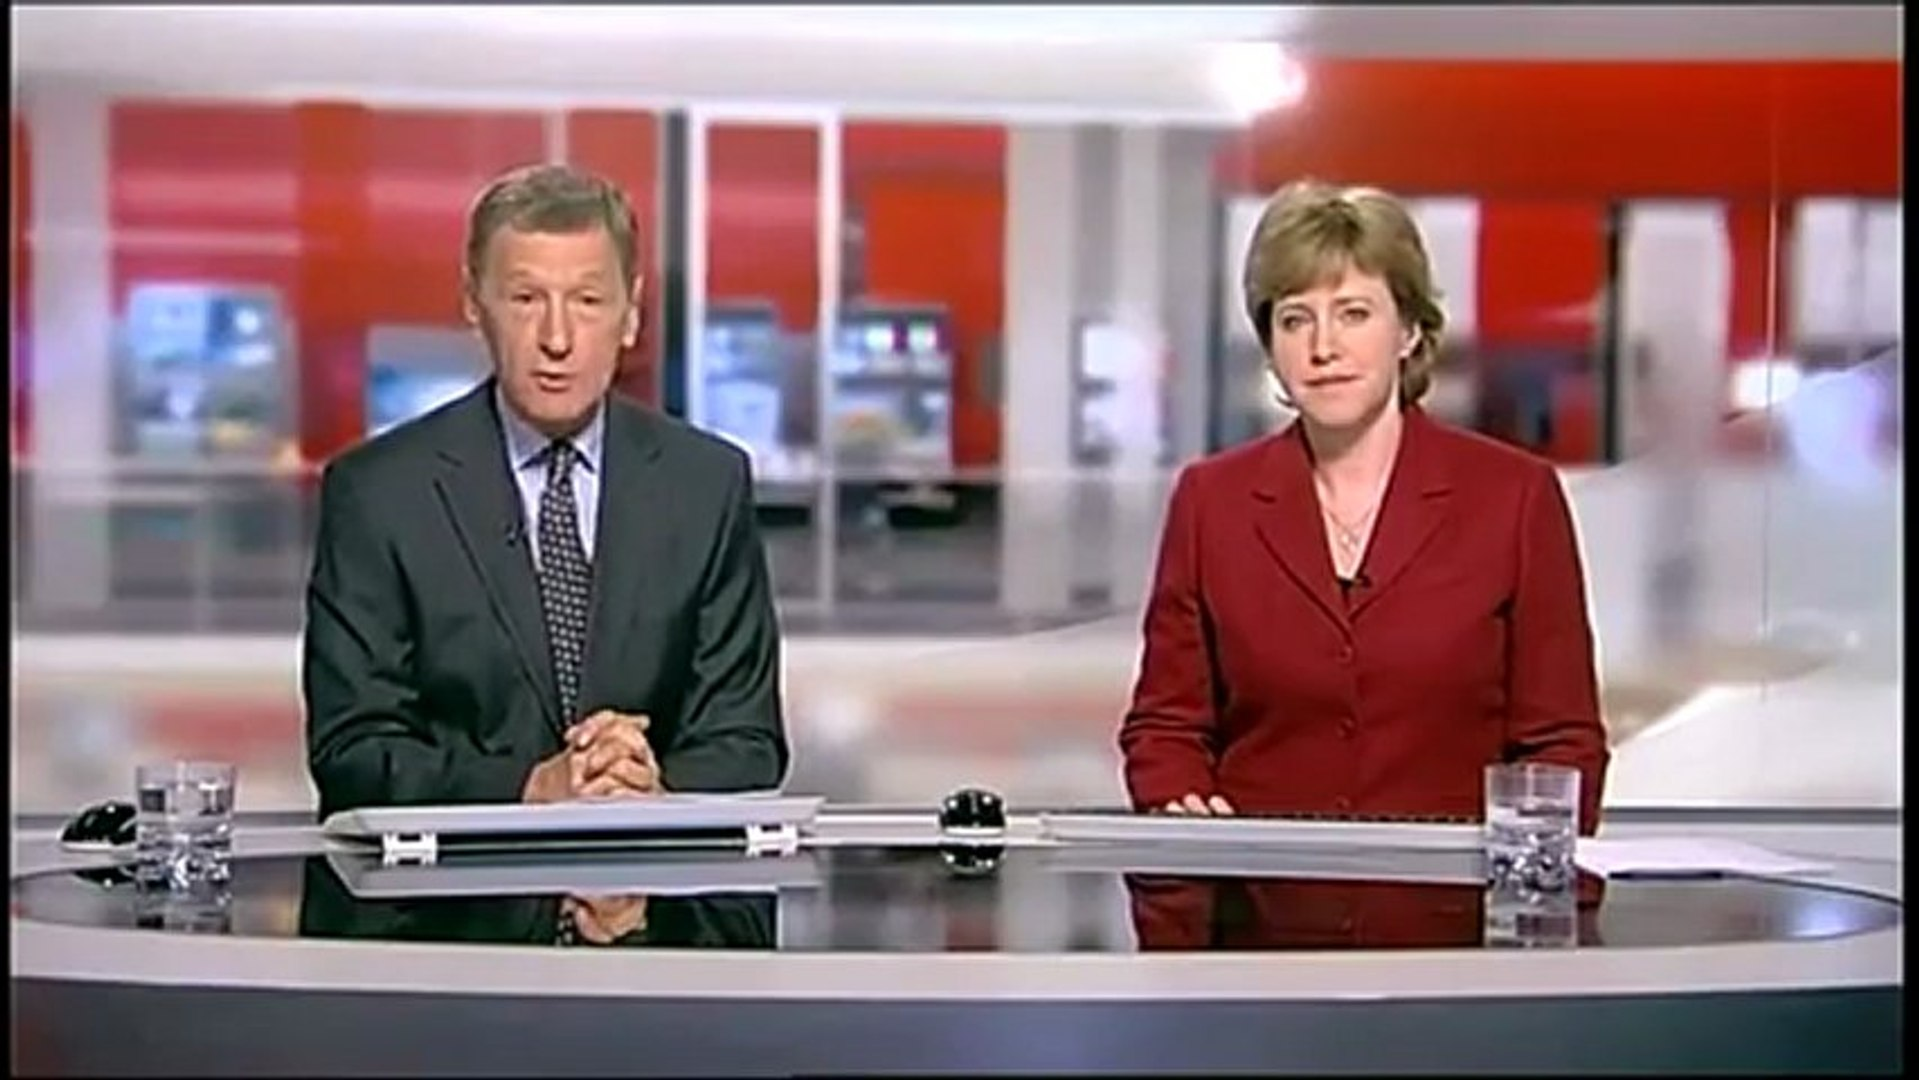 BBC Look East News Luton March Soldiers Protest Muslims & BBC - Sport Relief